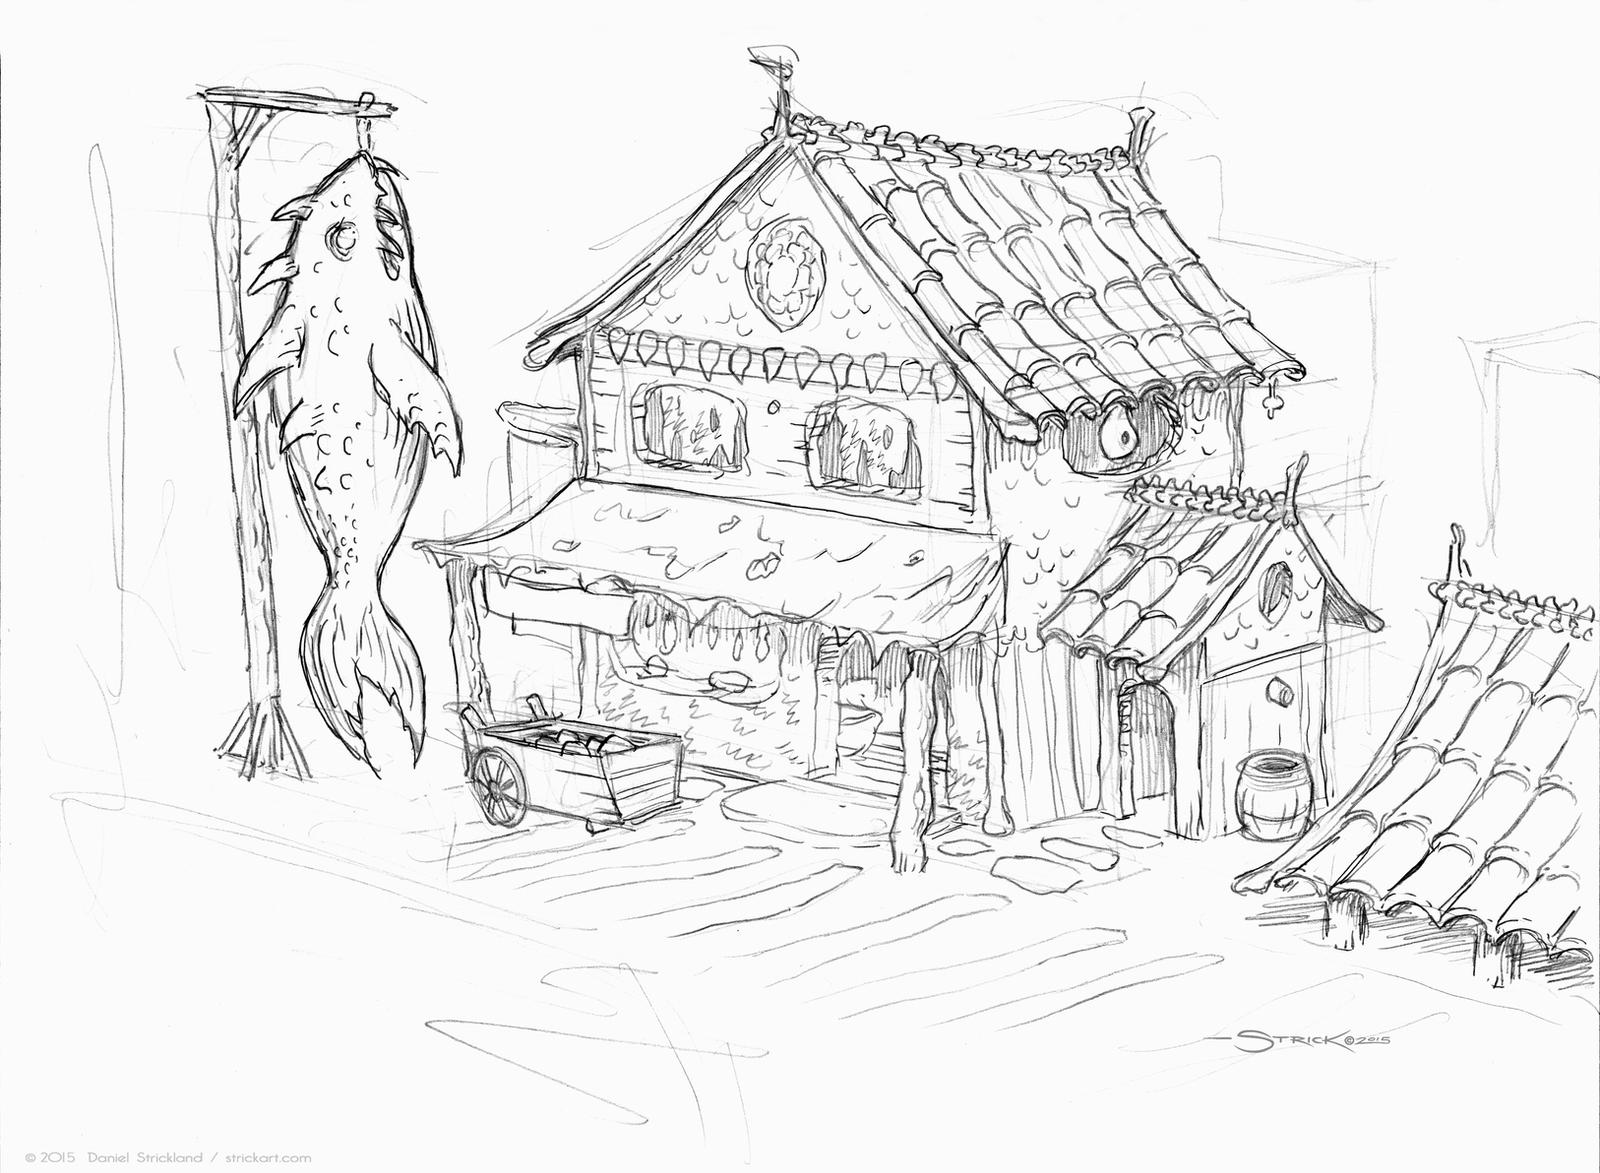 Fish Market sketch by strickart